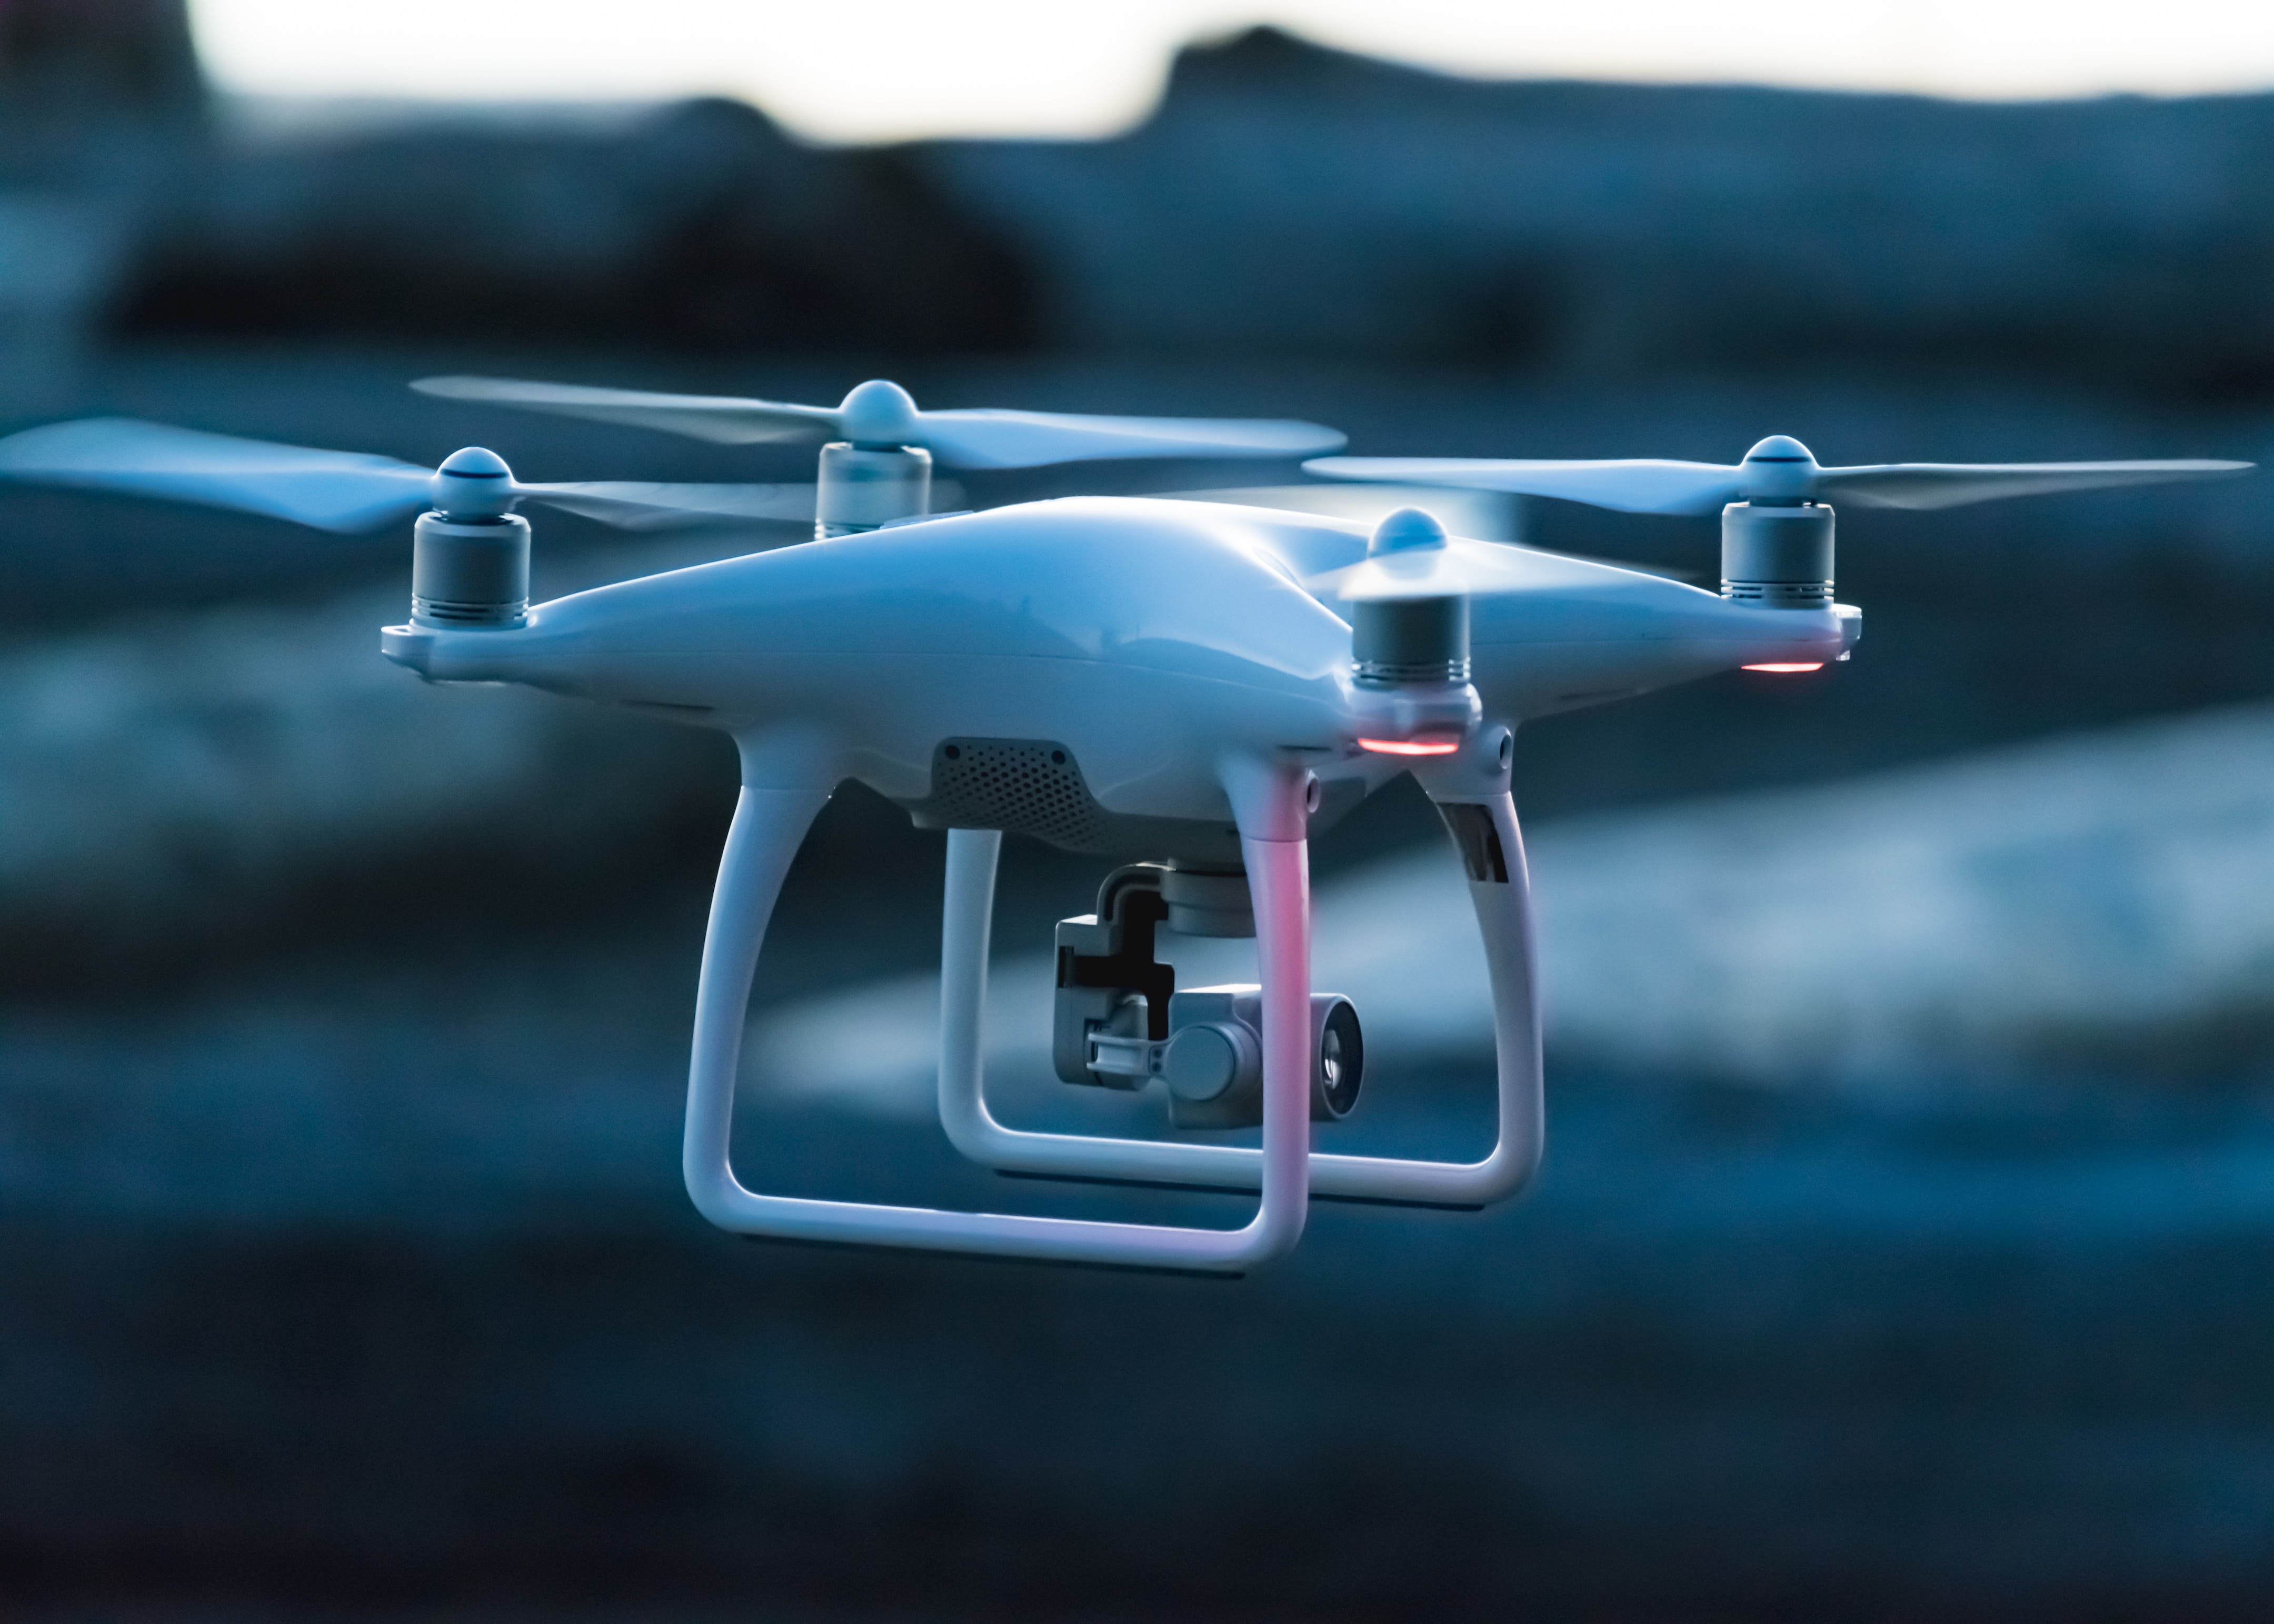 Overview of drone capabilities and potential risks